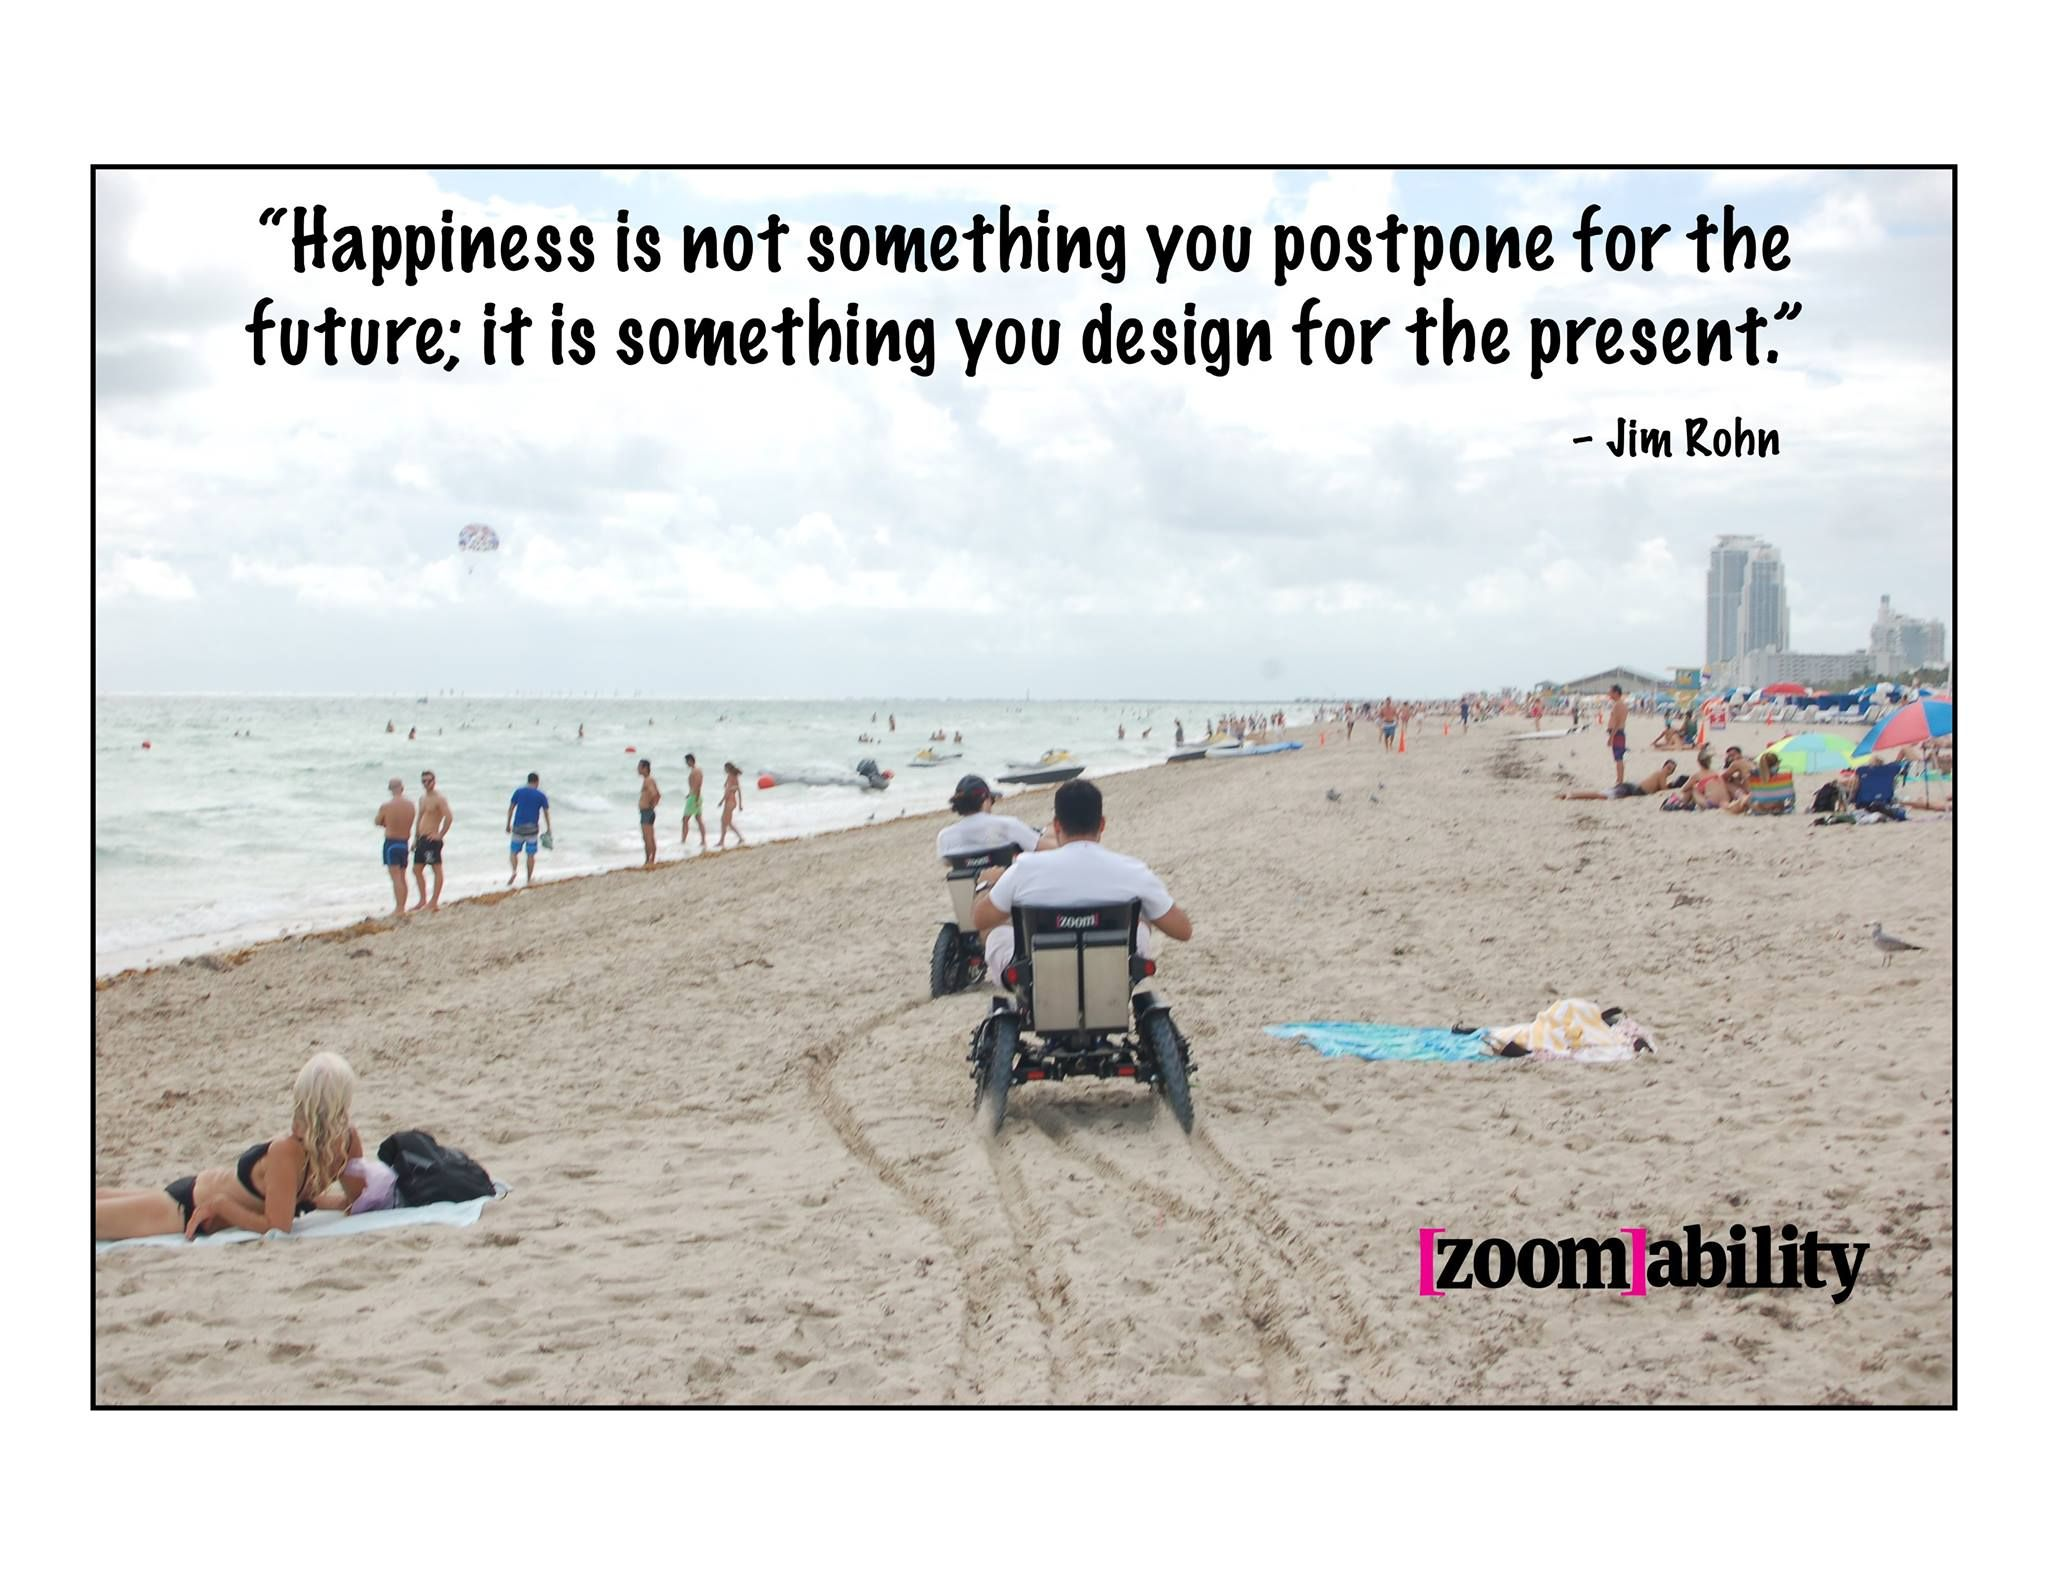 The Zoom is designed for happiness! It's also designed to be an all terrain mobility device that can handle the most challenging terrain, including sand!